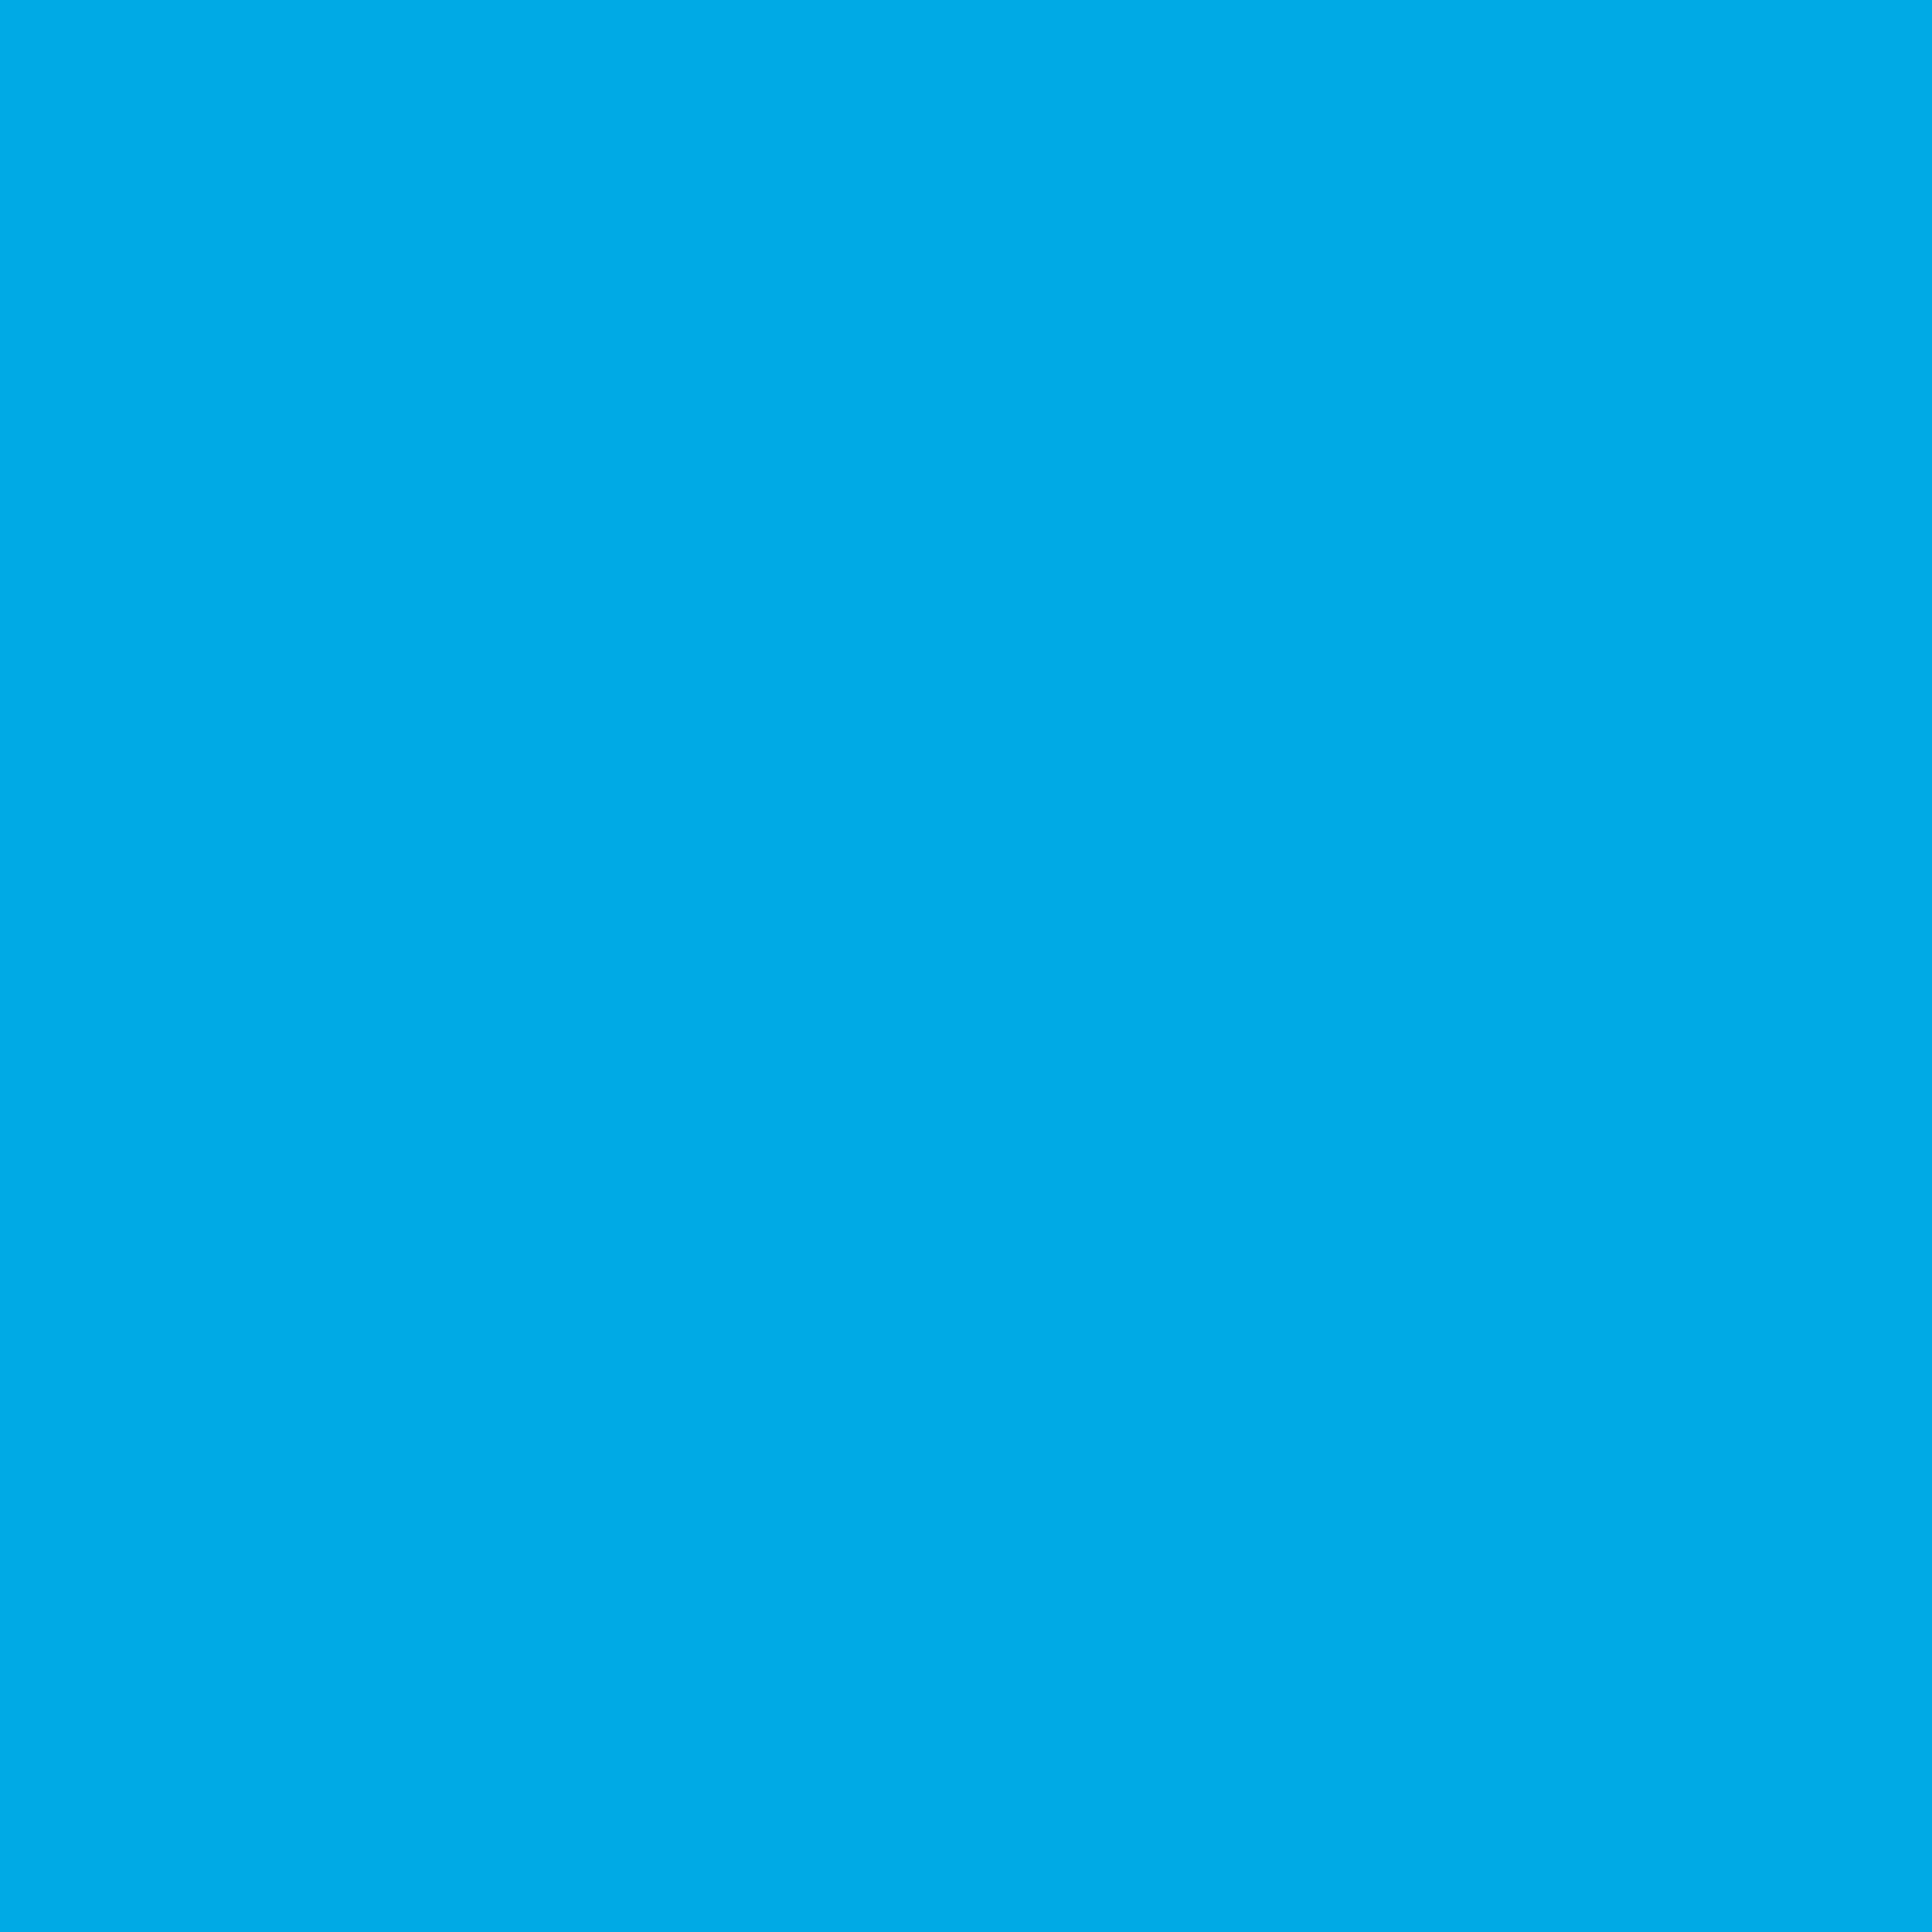 2048x2048 Spanish Sky Blue Solid Color Background